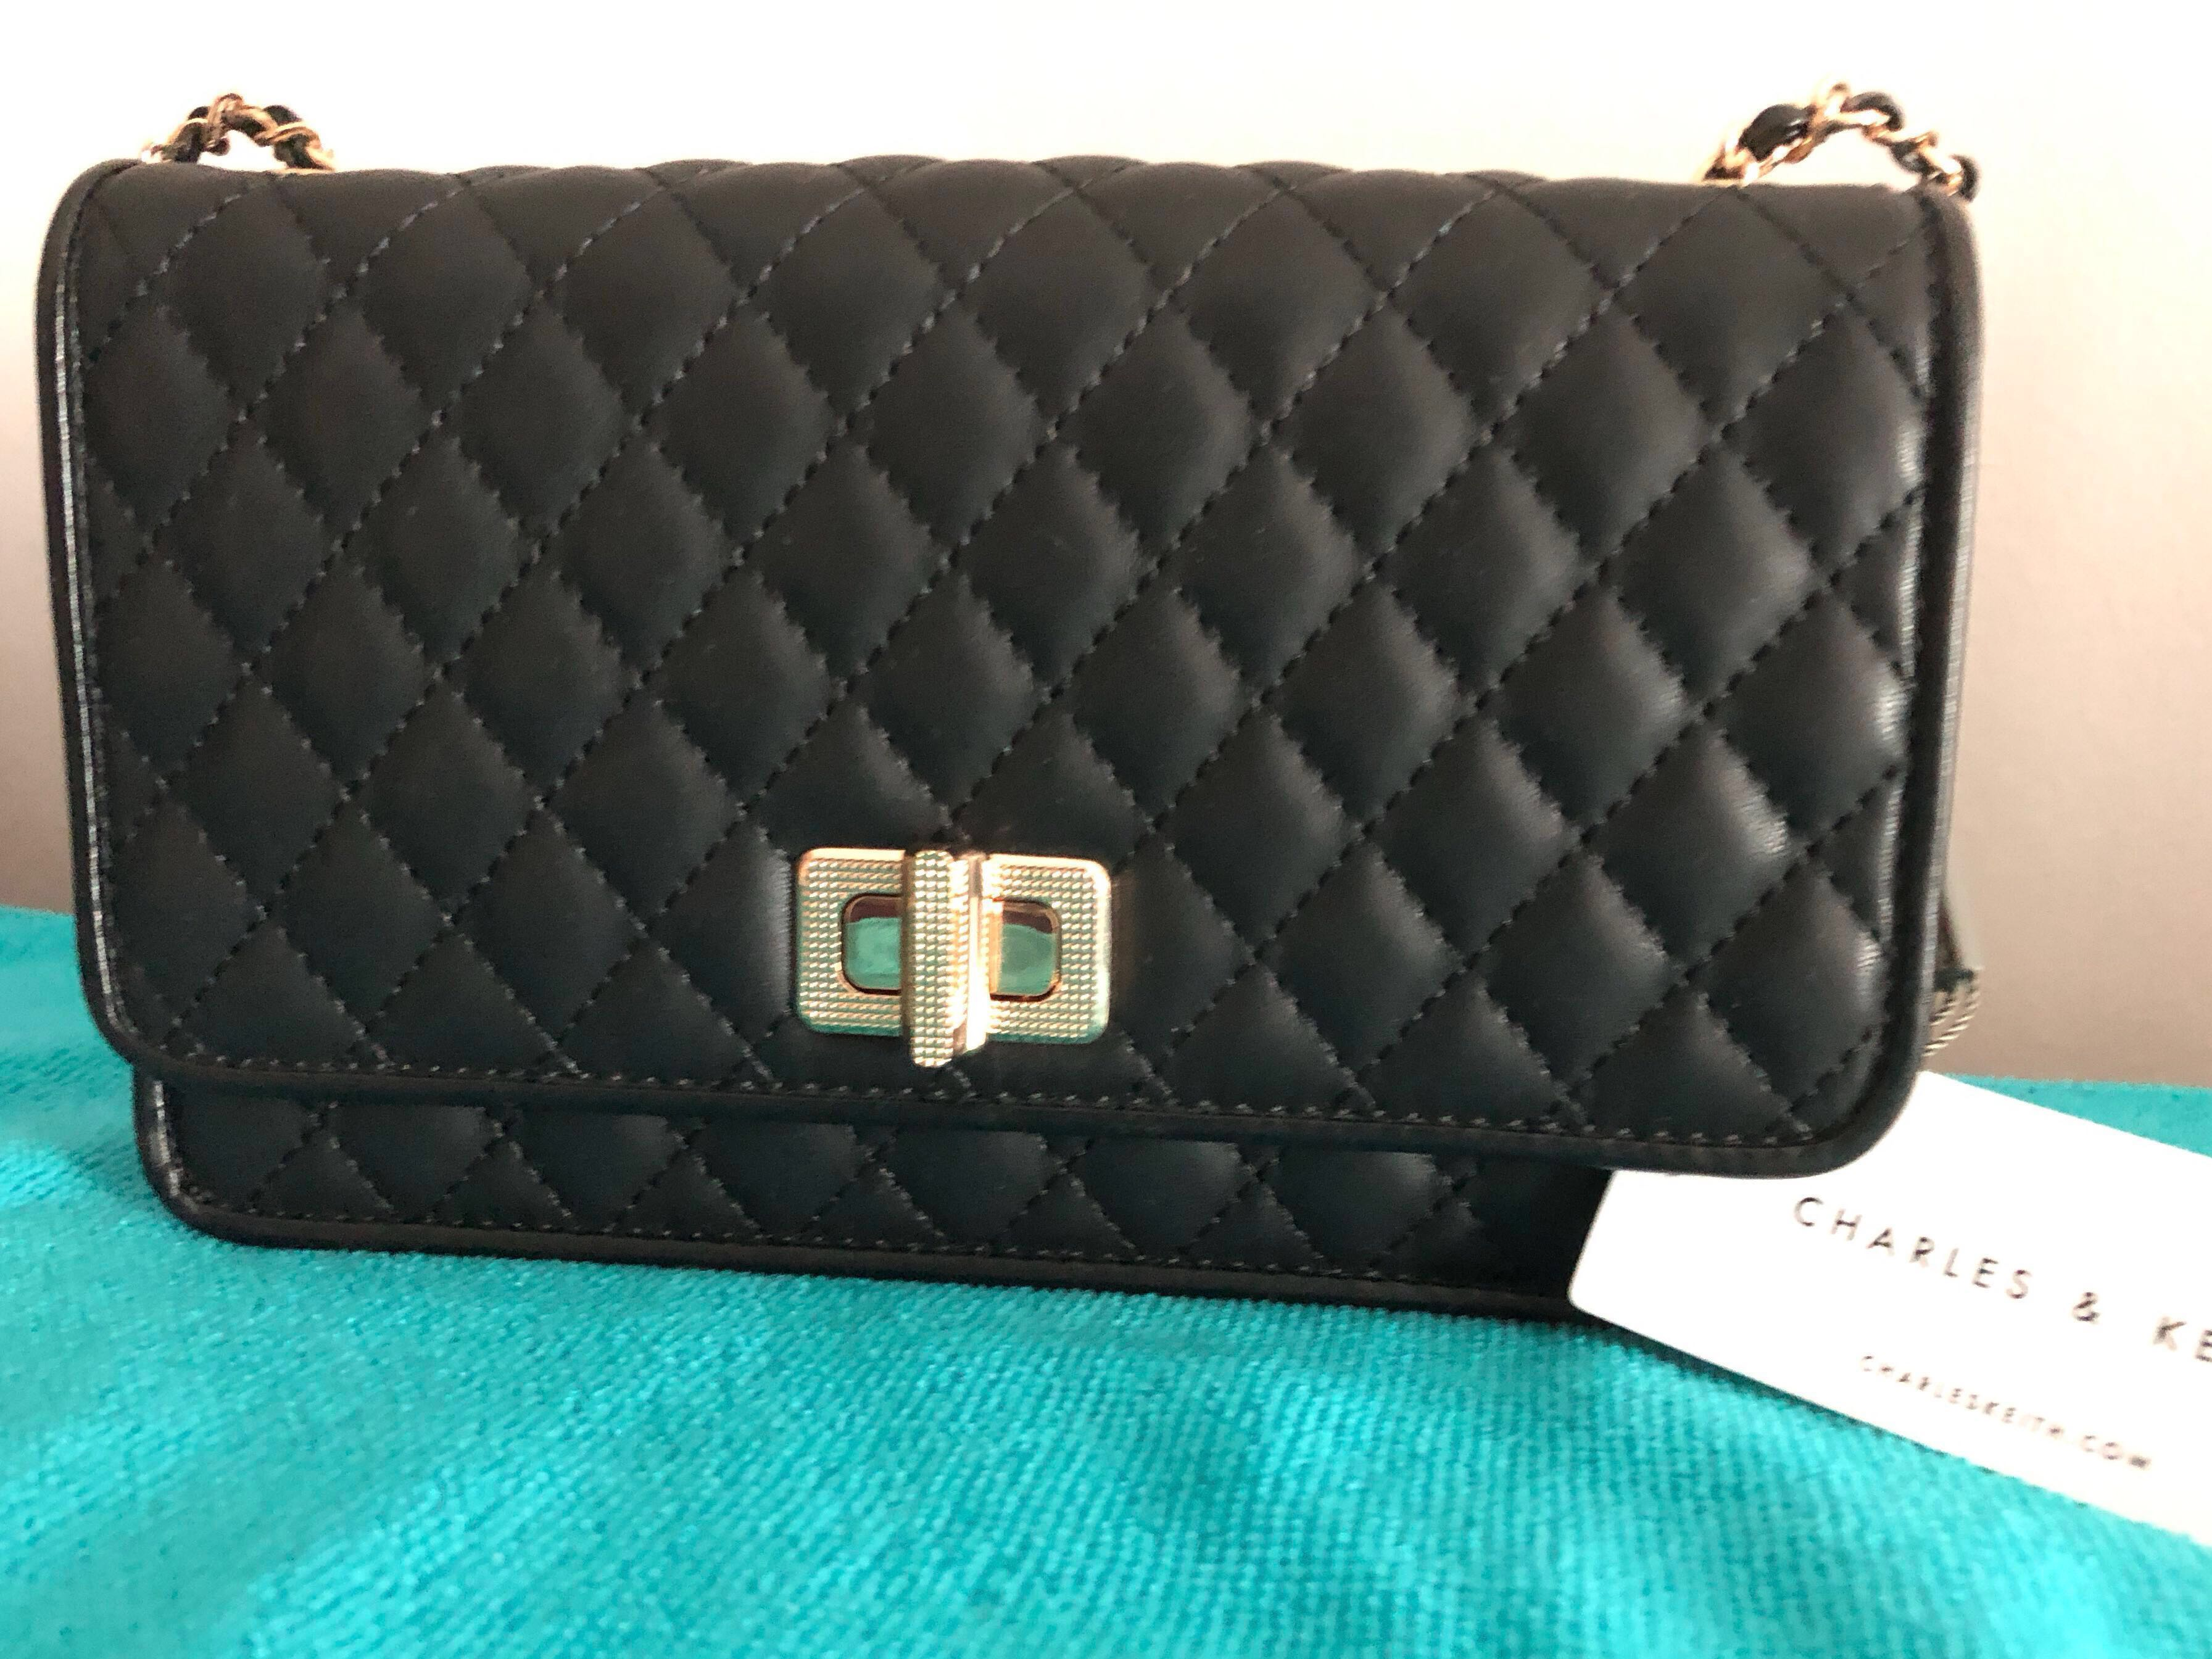 59b3ed0aa0ed Sold] Charles & Keith sling wallet on chain, Luxury, Bags & Wallets ...